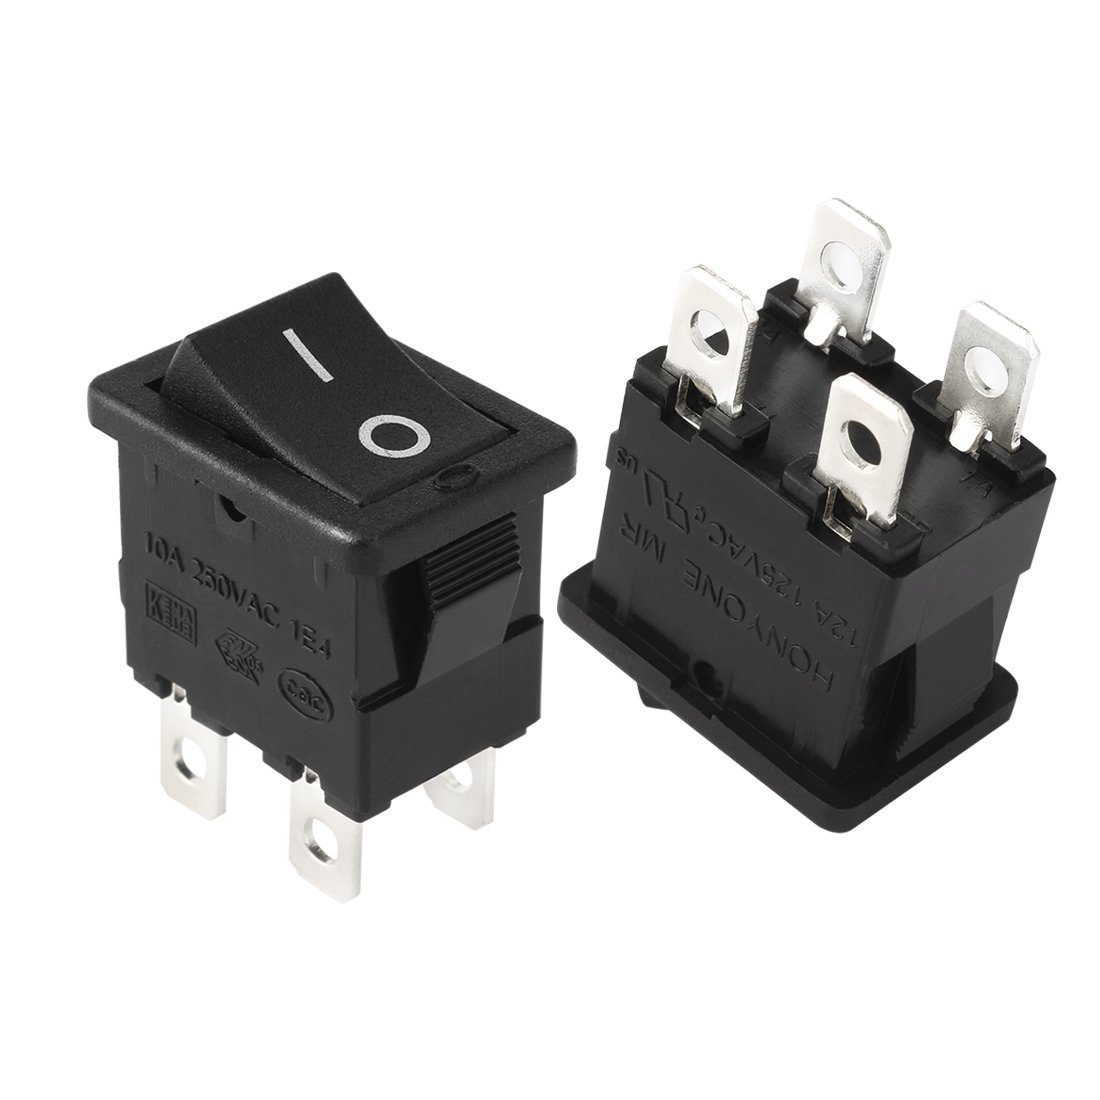 Uxcell Ac 12a 125v 10a 250v Dpst On Off Button 4p 2 5pcs Lot Push Switch 3a 1 Circuit Non Locking Position I O Rocker Boat Sports Outdoors